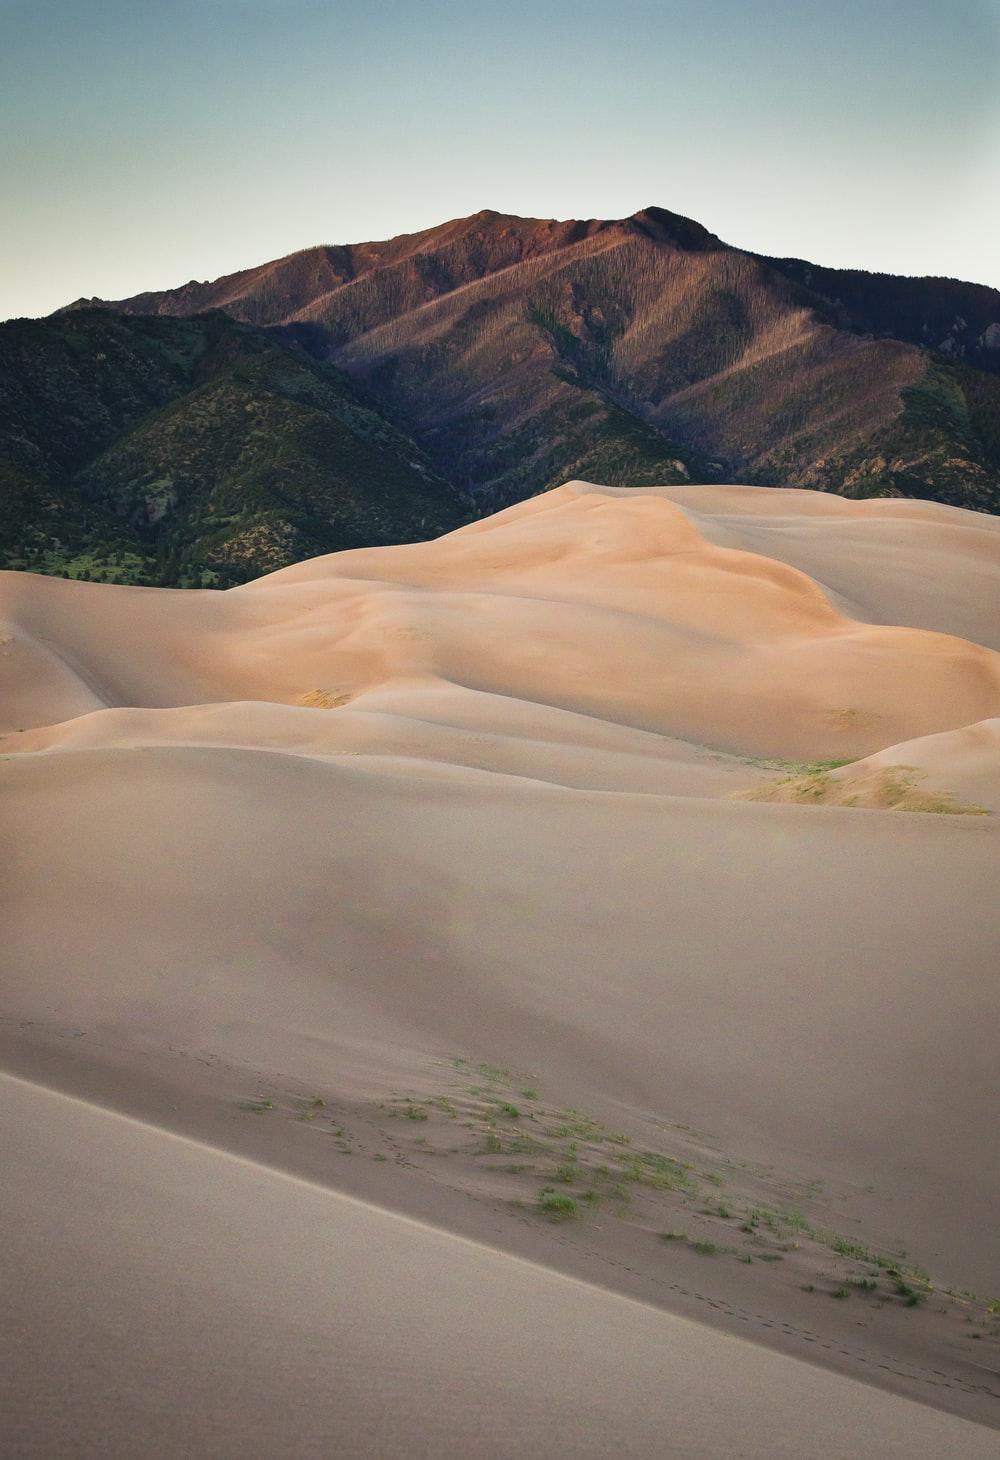 sand dunes near brown mountain